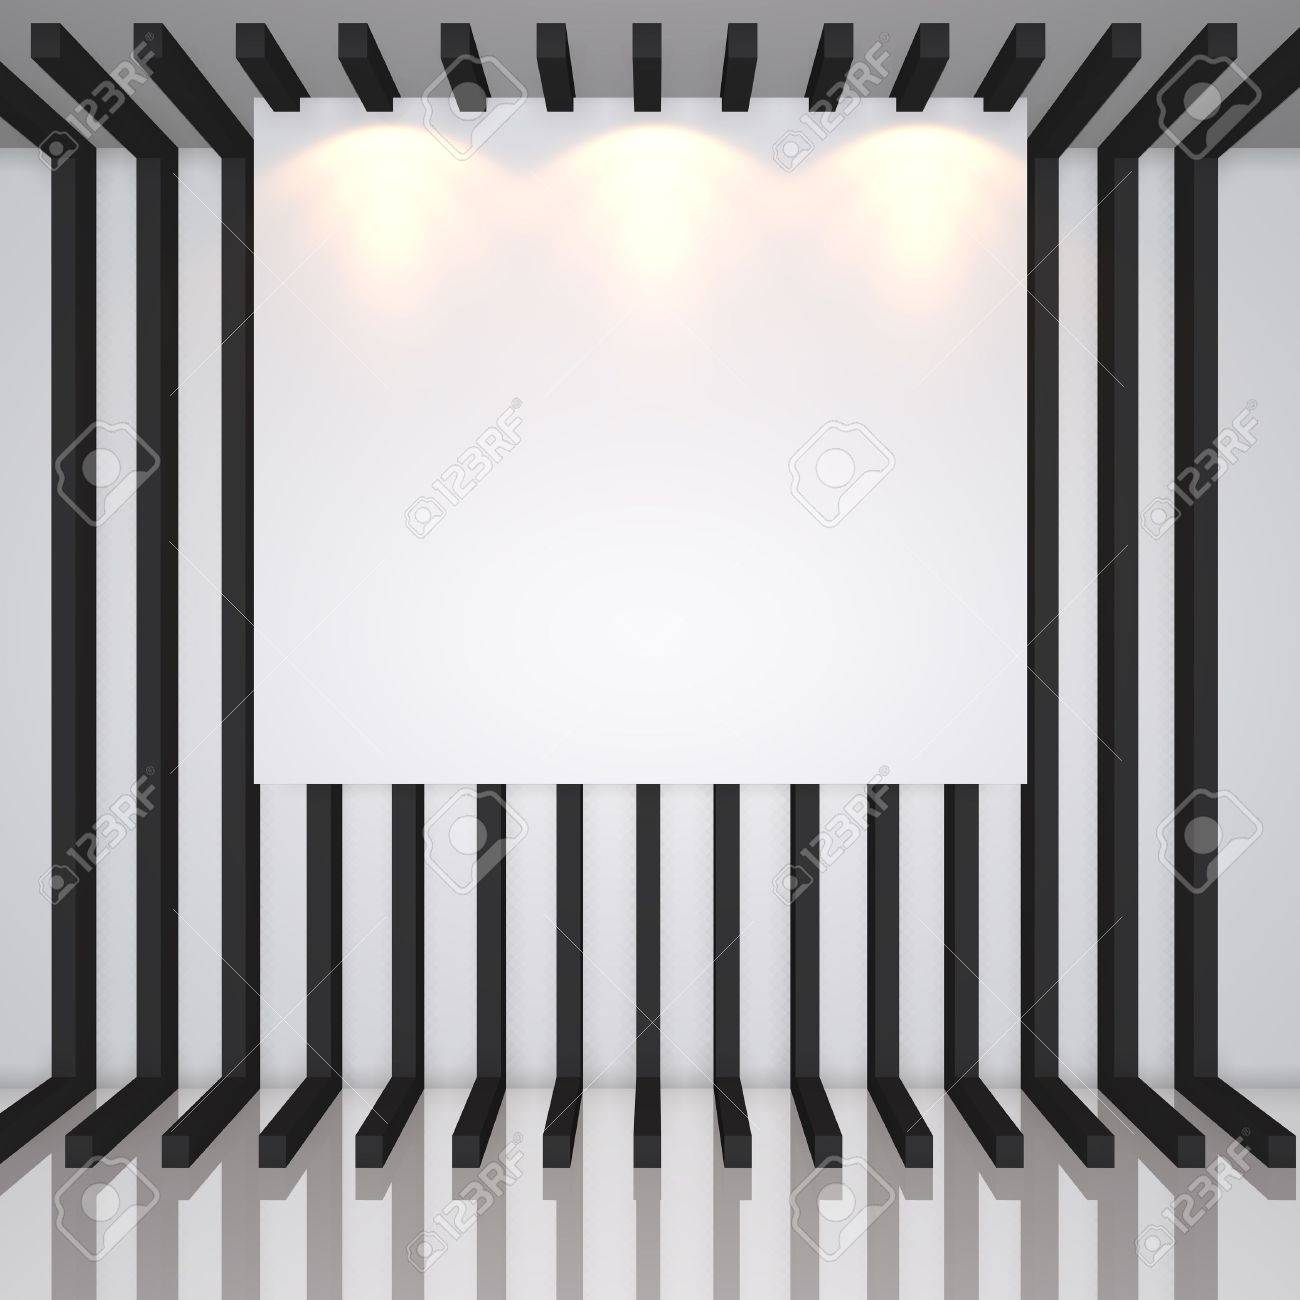 Gallery Interior With Empty Frames On Black Line Decorate Wall Stock ...